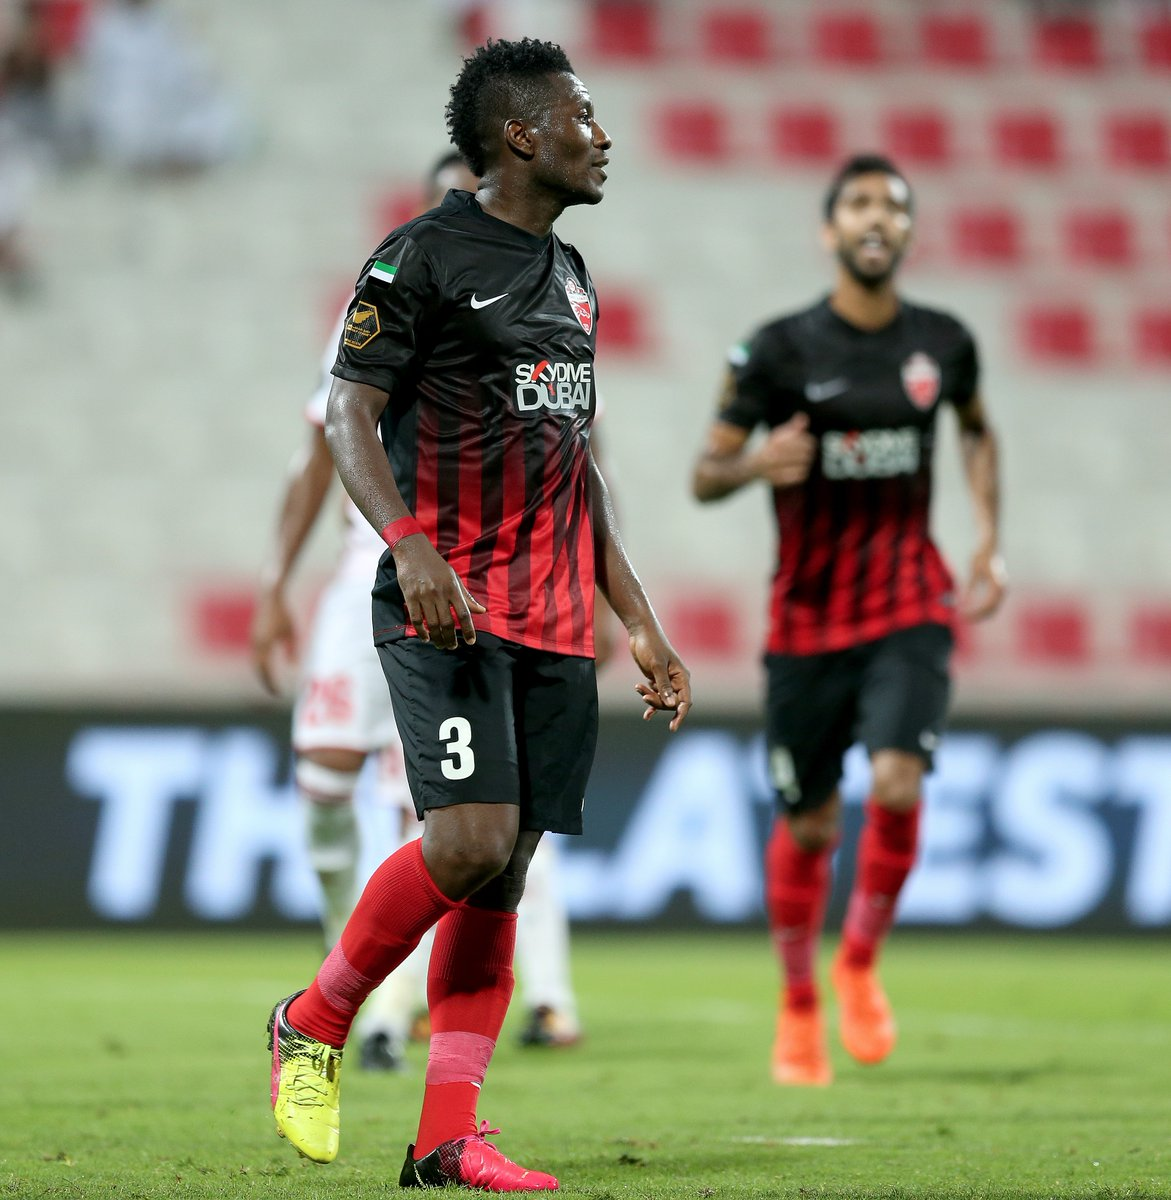 VIDEO: Watch Asamoah Gyan's expertly taken penalty in Al Ahli draw